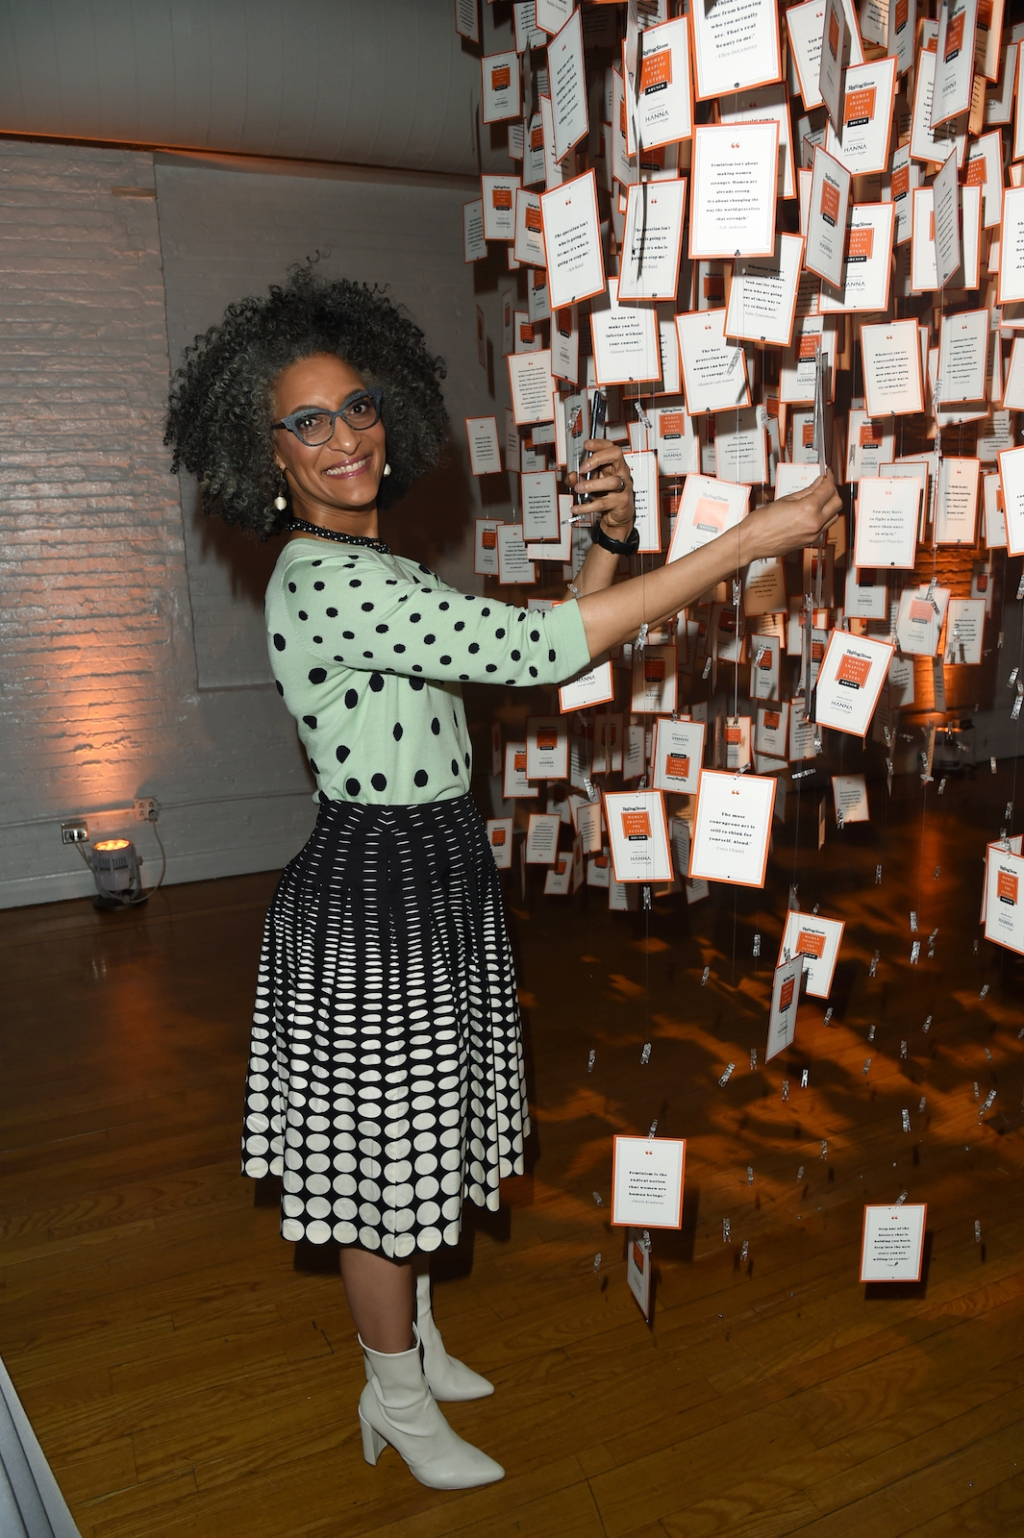 Chef Carla Hall adds her quote of empowerment to the installation.